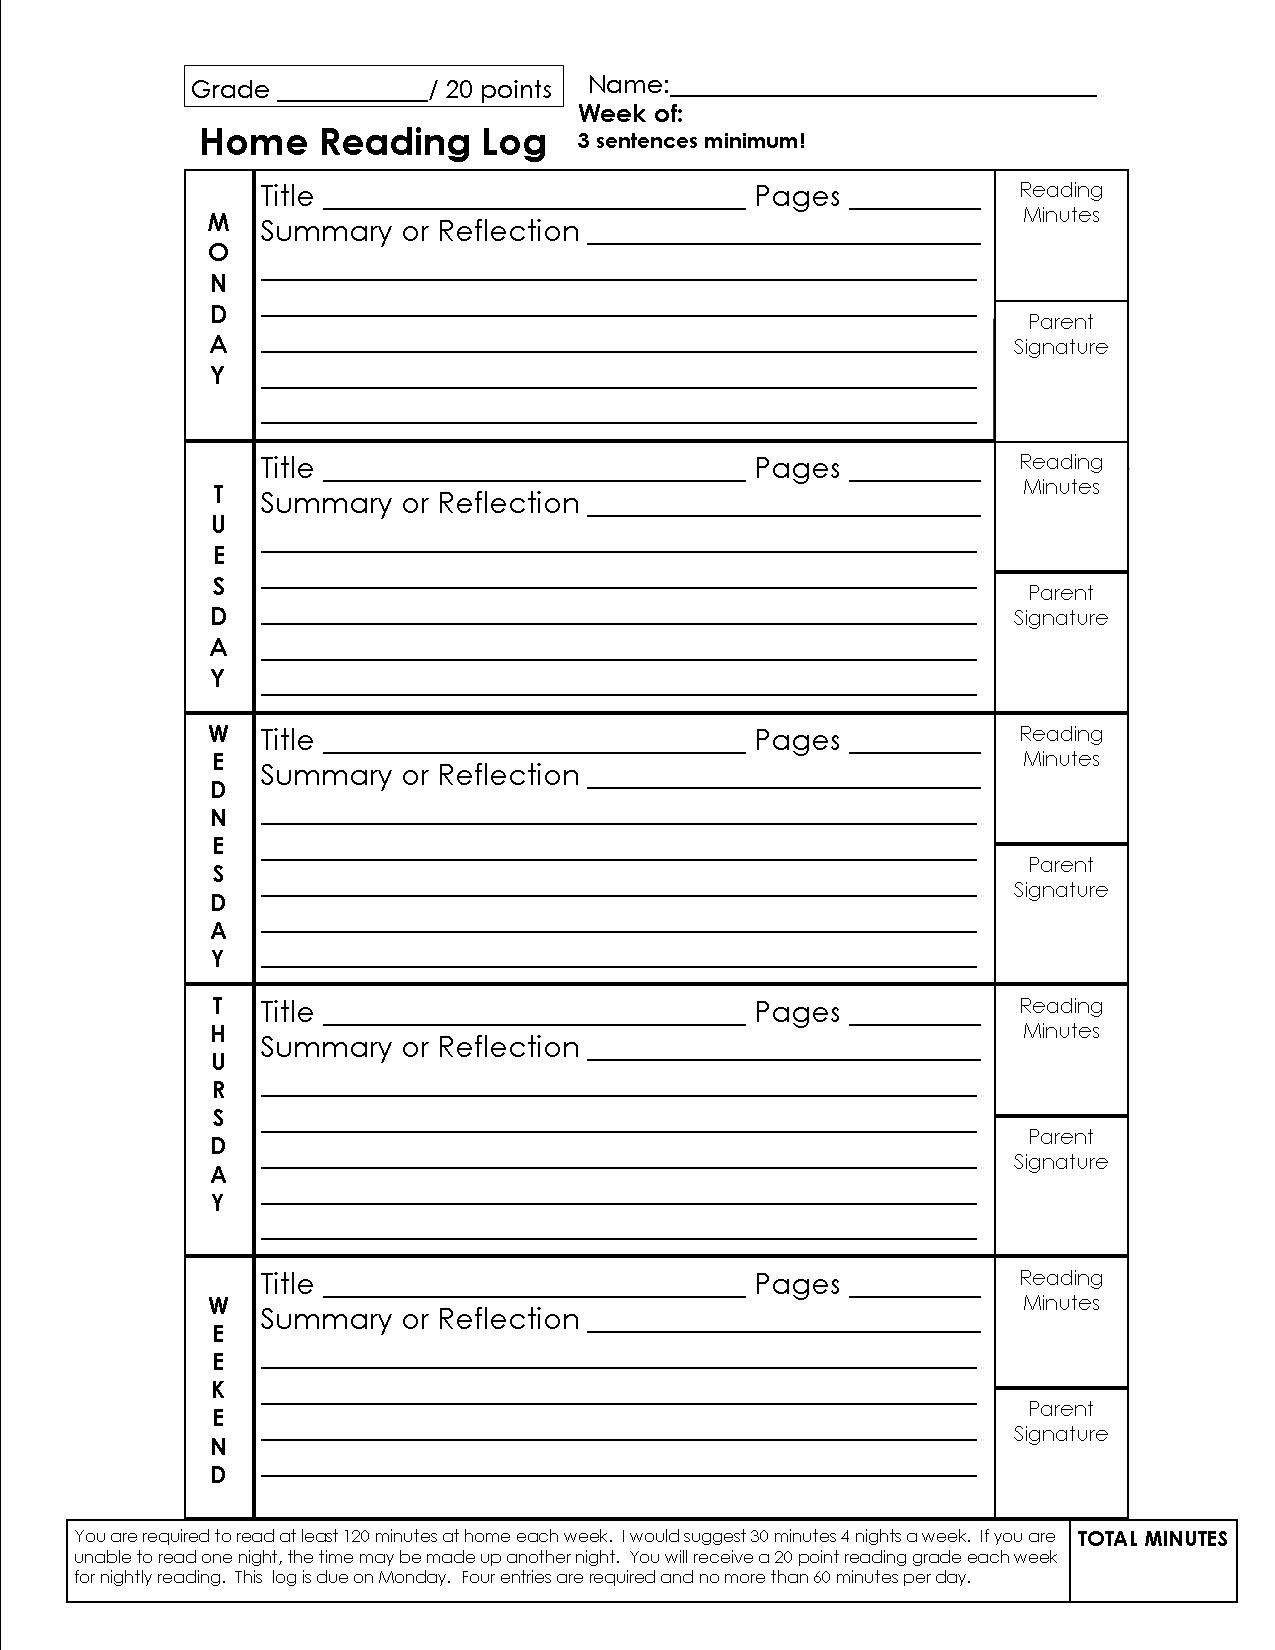 Reading Response Forms For Elementary Schools